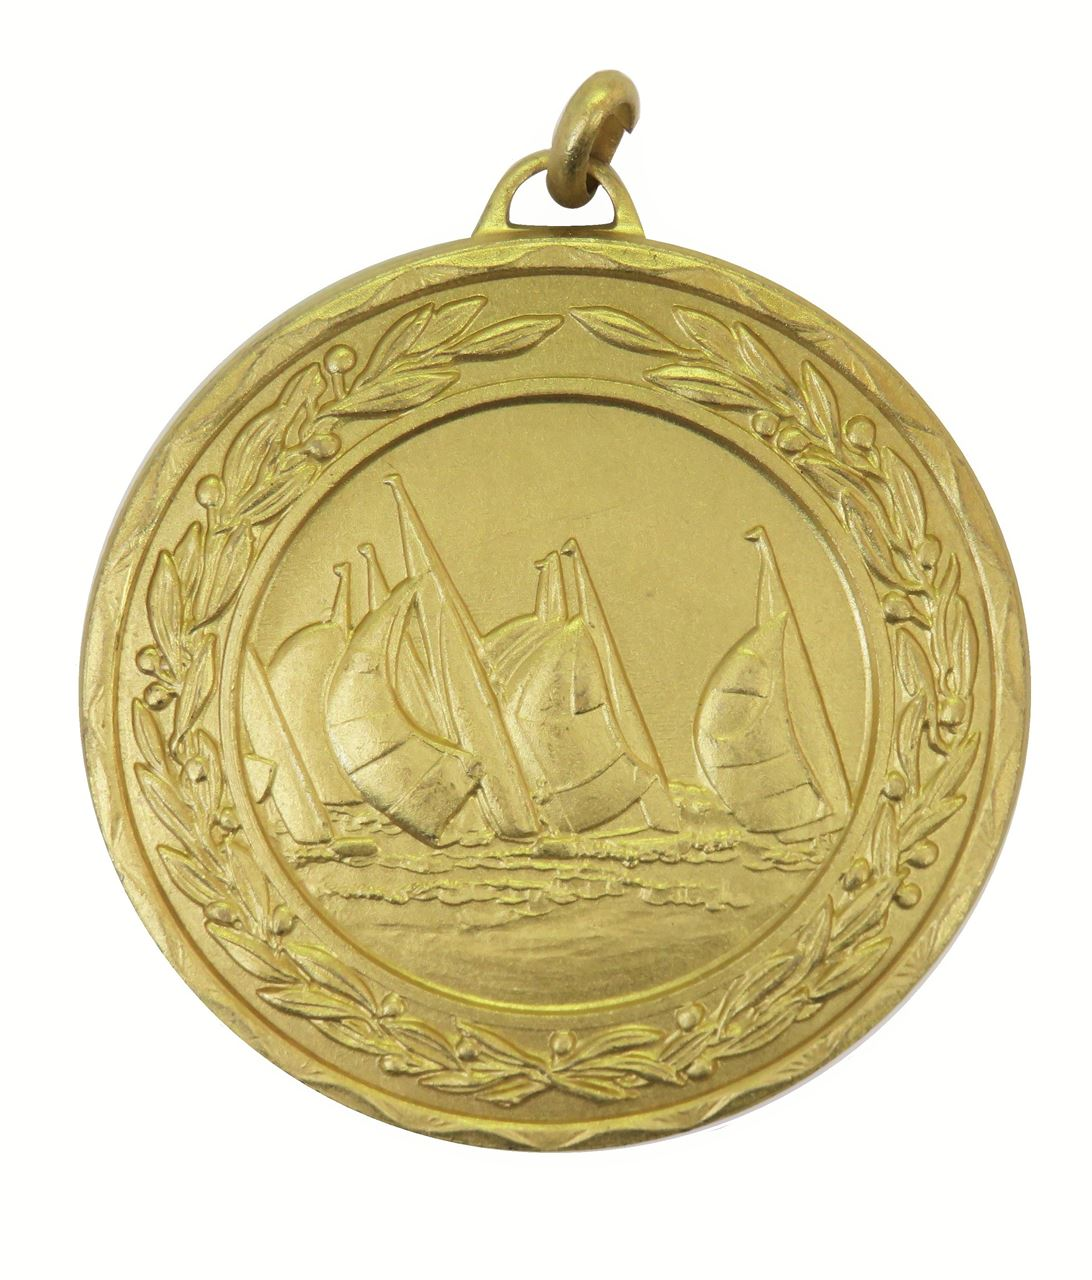 Gold Laurel Economy Sailing Medal (size: 50mm) - 4300E